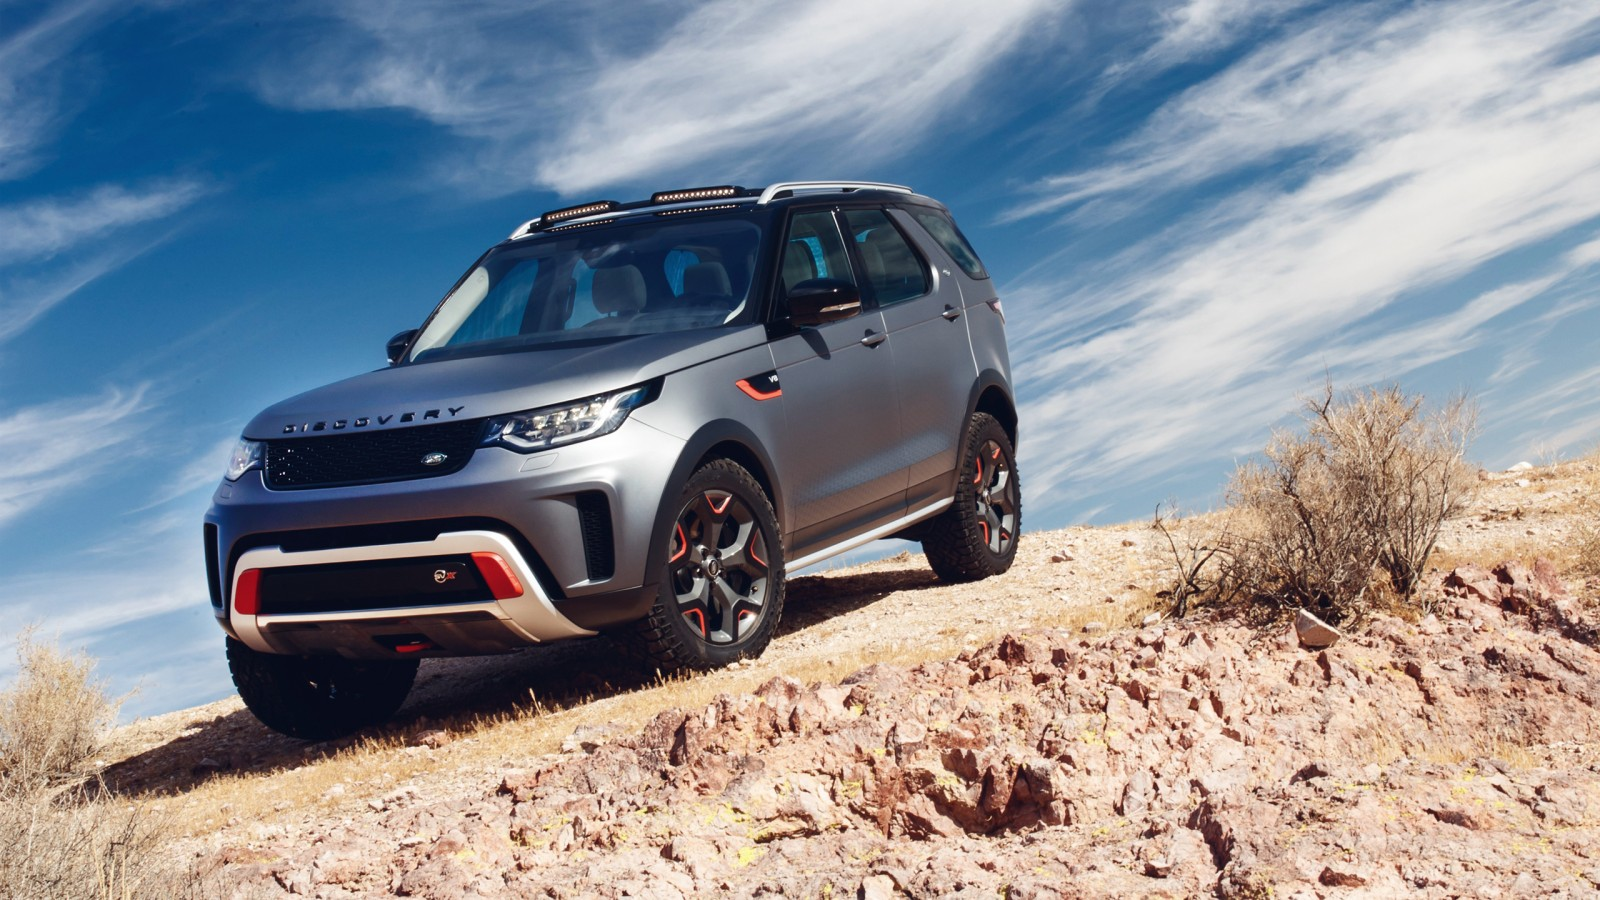 2018 Land Rover Discovery Svx 2 Wallpaper Hd Car